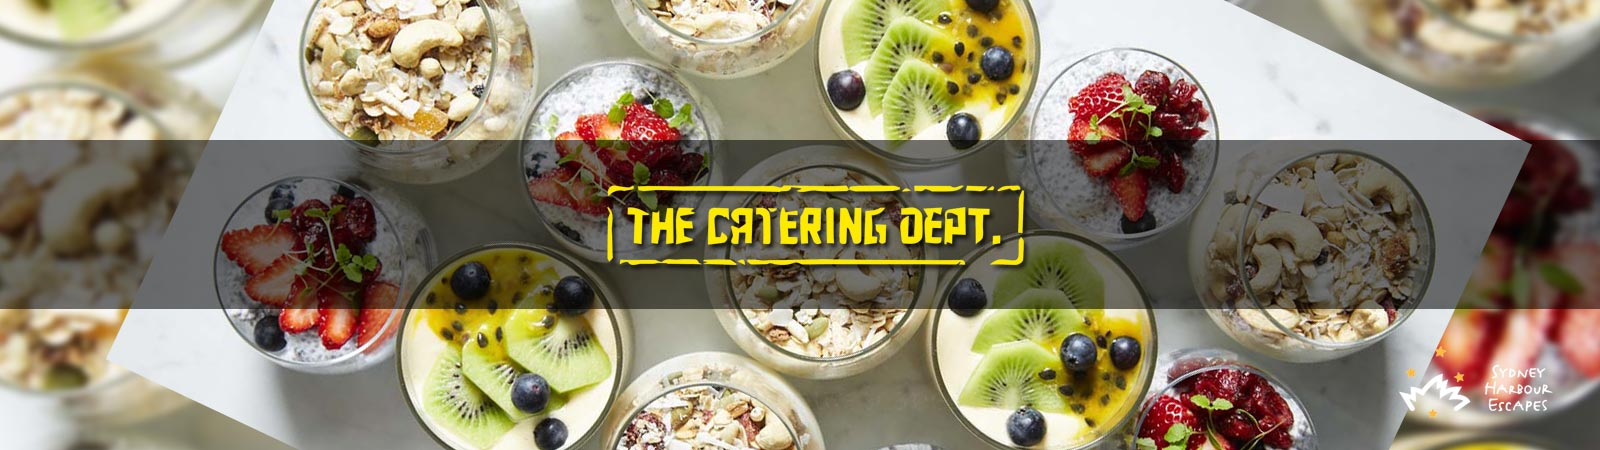 The Catering Department - Recommended Caterer Banner